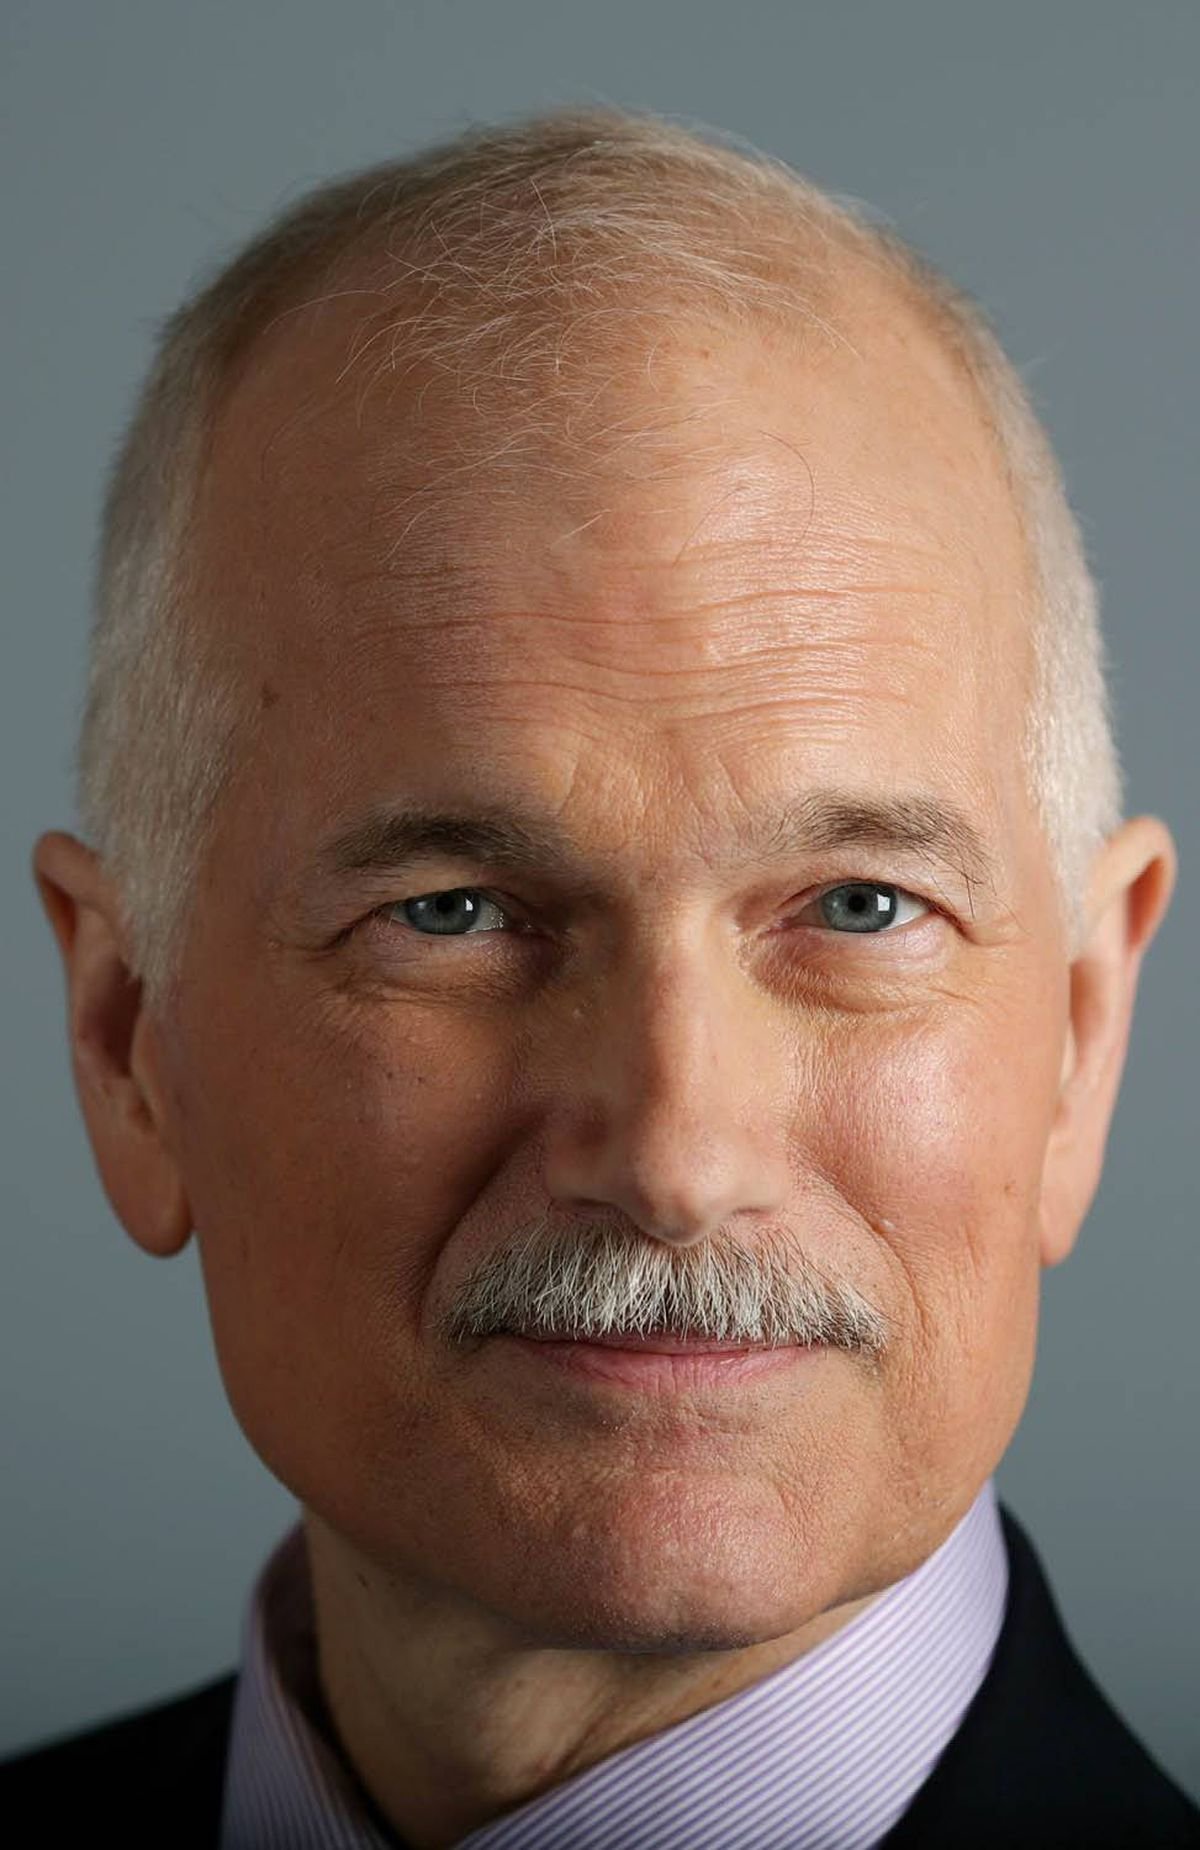 Jack Layton poses for a portrait during an interview in his office on Parliament Hill in Ottawa.